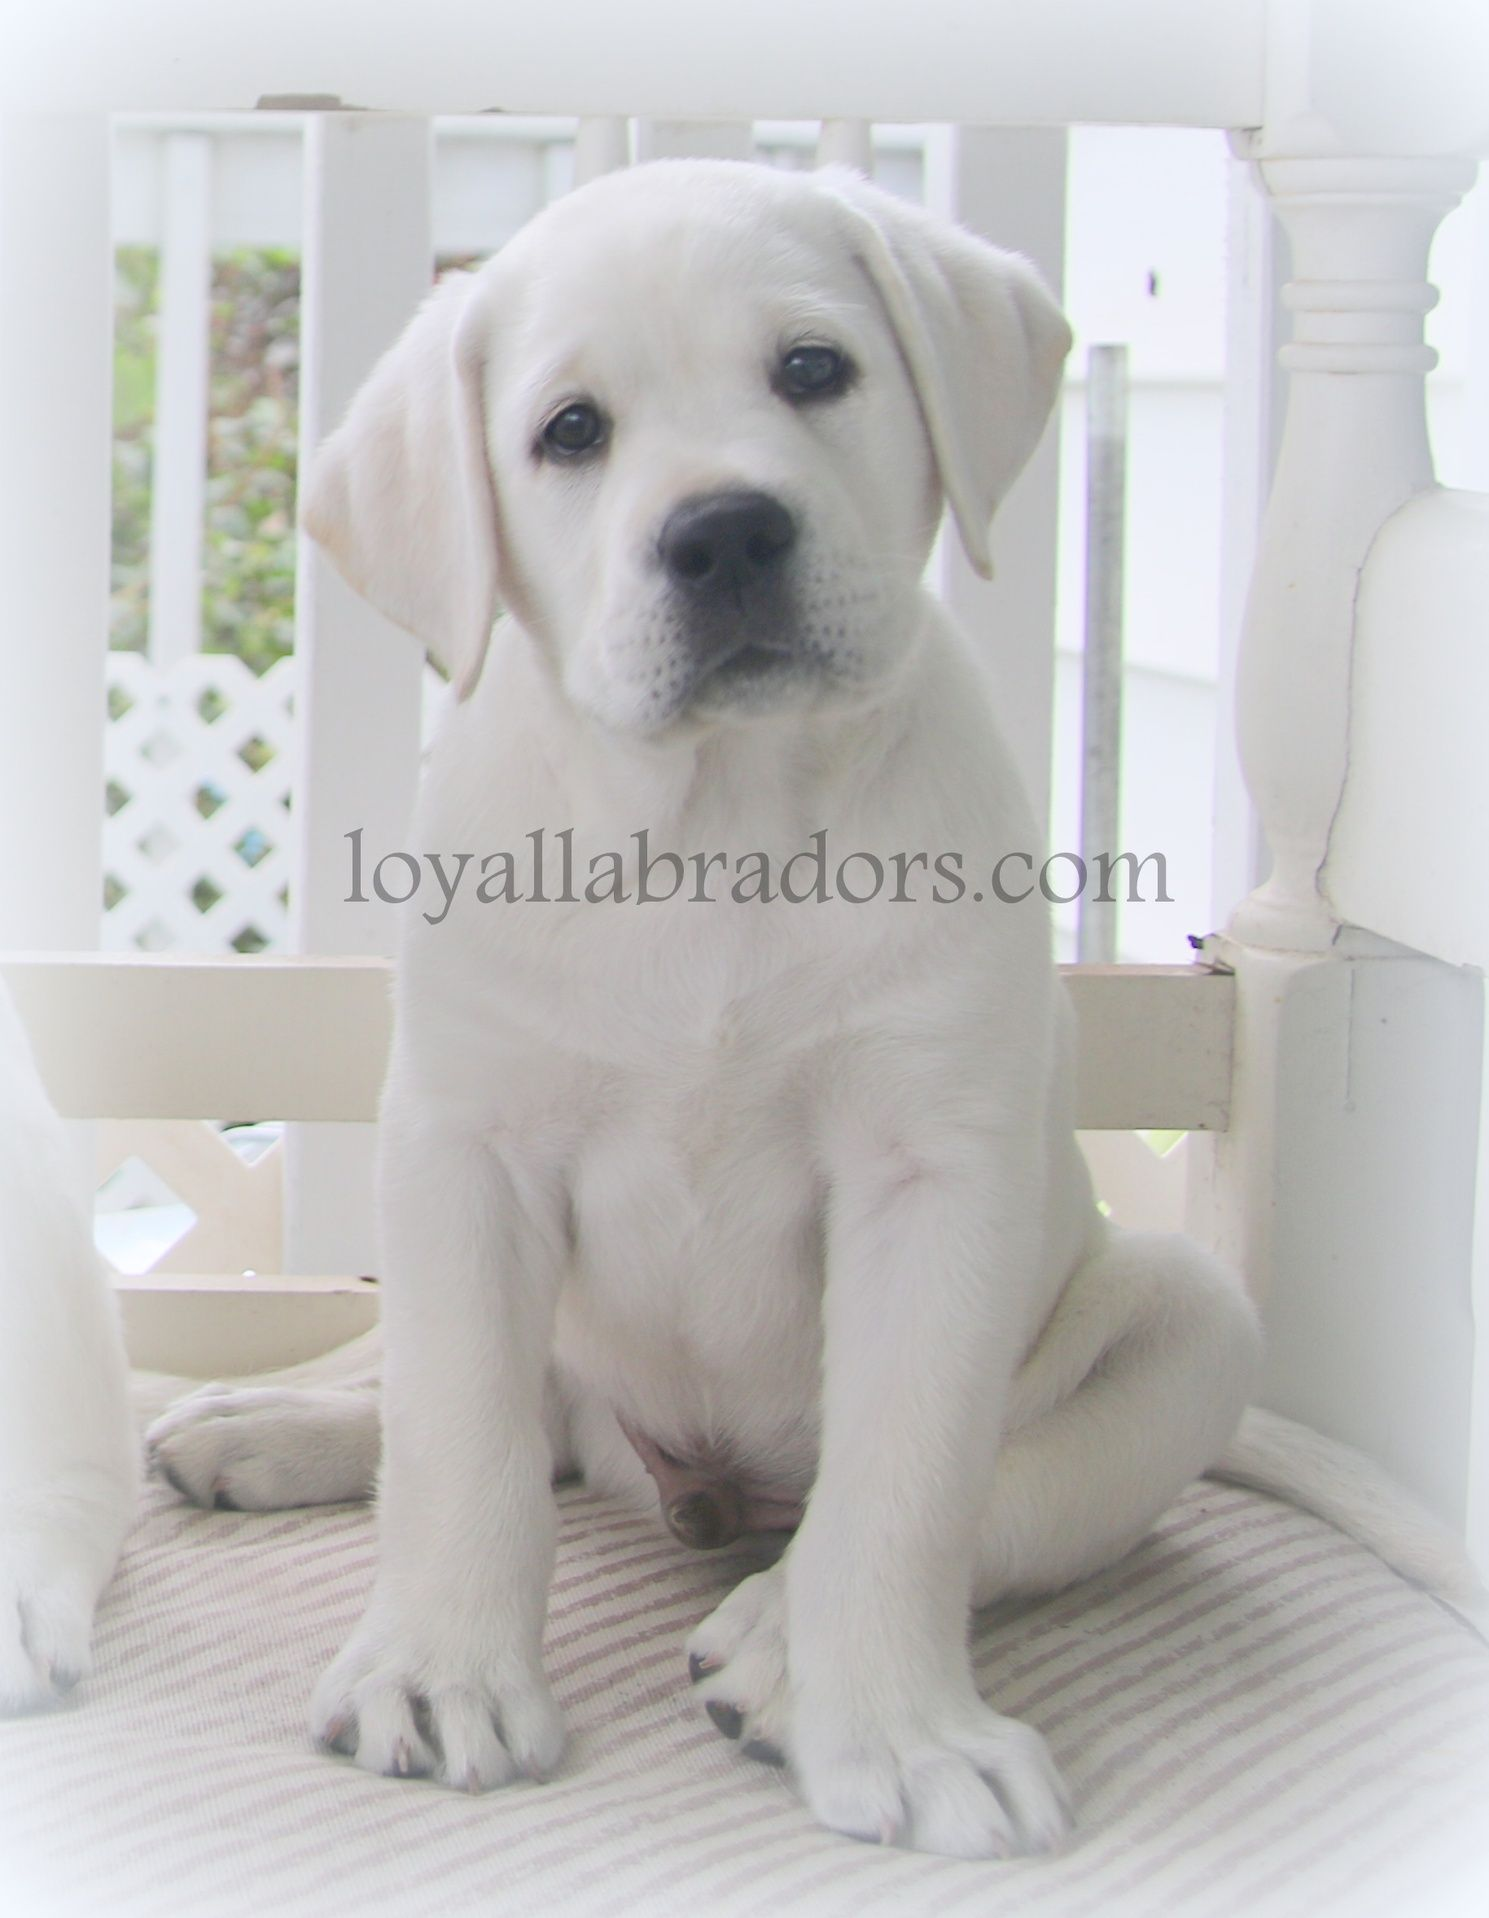 White English Lab Puppies White Labrador Retriever Puppies Our White Labrador Puppies For Sale Are From Lab Puppies White Lab Puppies White Labrador Puppy